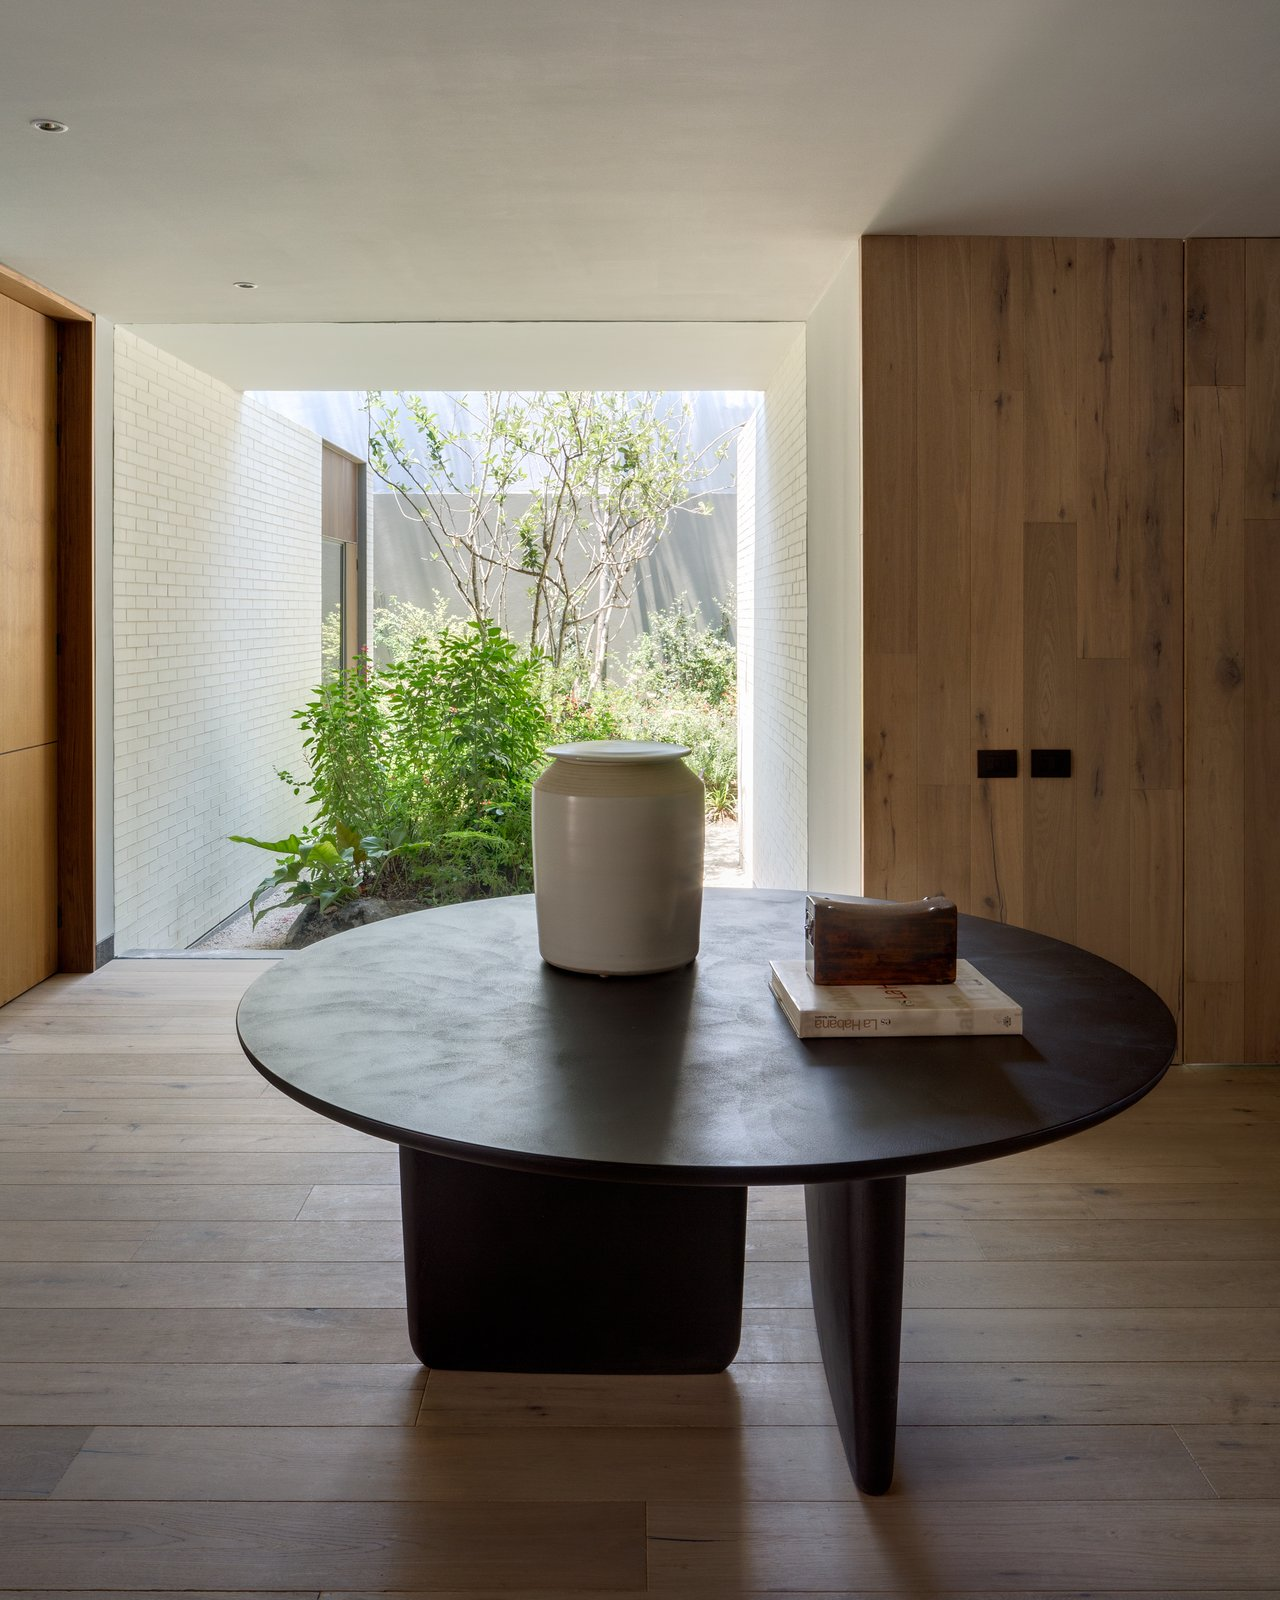 Windows and Picture Window Type  Photo 6 of 20 in A Serene Home in Mexico Weaves Around Verdant Gardens